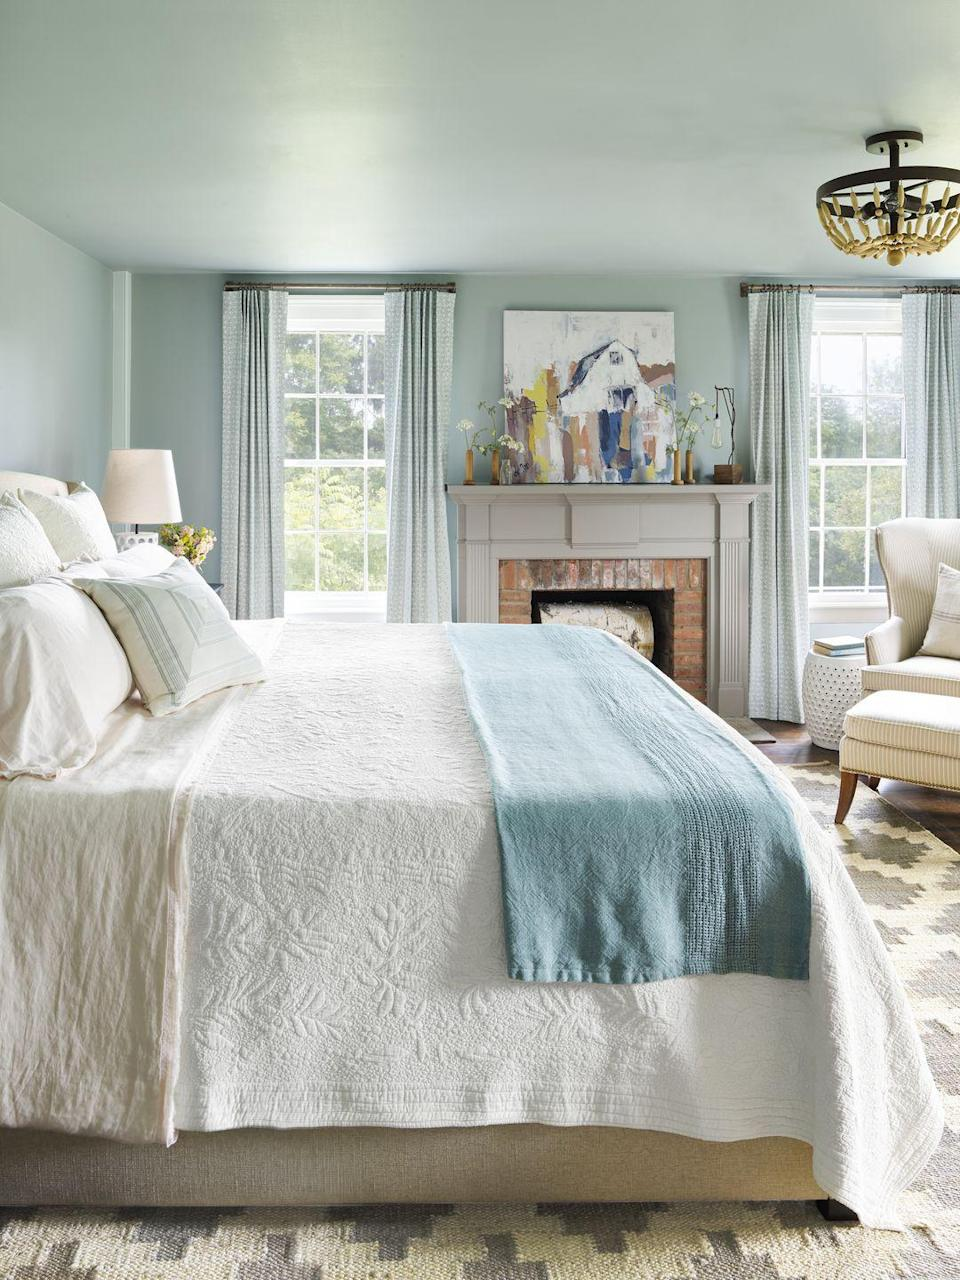 """<p>Give your bedroom the full spa treatment by painting it in a sea of soothing, watery blue. If you don't have crown molding, consider painting both the walls and the ceiling the same color to create a continuous look. Continue the continuity with simple curtains in a similar tone and then add a white or neutral rug, bedding, and upholstery to balance the color. Along with white, a warm gray such as <a href=""""https://go.redirectingat.com?id=74968X1596630&url=https%3A%2F%2Fwww.lowes.com%2Fpd%2FHGTV-HOME-by-Sherwin-Williams-Dovetail-Interior-Paint-Sample-Actual-Net-Contents-8-fl-oz%2F1000878534&sref=https%3A%2F%2Fwww.countryliving.com%2Fremodeling-renovation%2Fhome-makeovers%2Fg32468539%2Fbest-bedroom-paint-colors-ideas%2F"""" rel=""""nofollow noopener"""" target=""""_blank"""" data-ylk=""""slk:Dovetail from HGTV Home by Sherwin-Williams"""" class=""""link rapid-noclick-resp"""">Dovetail from HGTV Home by Sherwin-Williams</a>, makes a nice choice for trim and millwork.</p><p><strong>Get the Look:</strong><br>Wall and Ceiling Paint Color: <a href=""""https://go.redirectingat.com?id=74968X1596630&url=https%3A%2F%2Fwww.lowes.com%2Fpd%2FHGTV-HOME-by-Sherwin-Williams-Silvermist-Interior-Paint-Sample-Actual-Net-Contents-8-fl-oz%2F1001326394&sref=https%3A%2F%2Fwww.countryliving.com%2Fremodeling-renovation%2Fhome-makeovers%2Fg32468539%2Fbest-bedroom-paint-colors-ideas%2F"""" rel=""""nofollow noopener"""" target=""""_blank"""" data-ylk=""""slk:Silvermist from HGTV Home by Sherwin-Williams"""" class=""""link rapid-noclick-resp"""">Silvermist from HGTV Home by Sherwin-Williams</a><br></p>"""